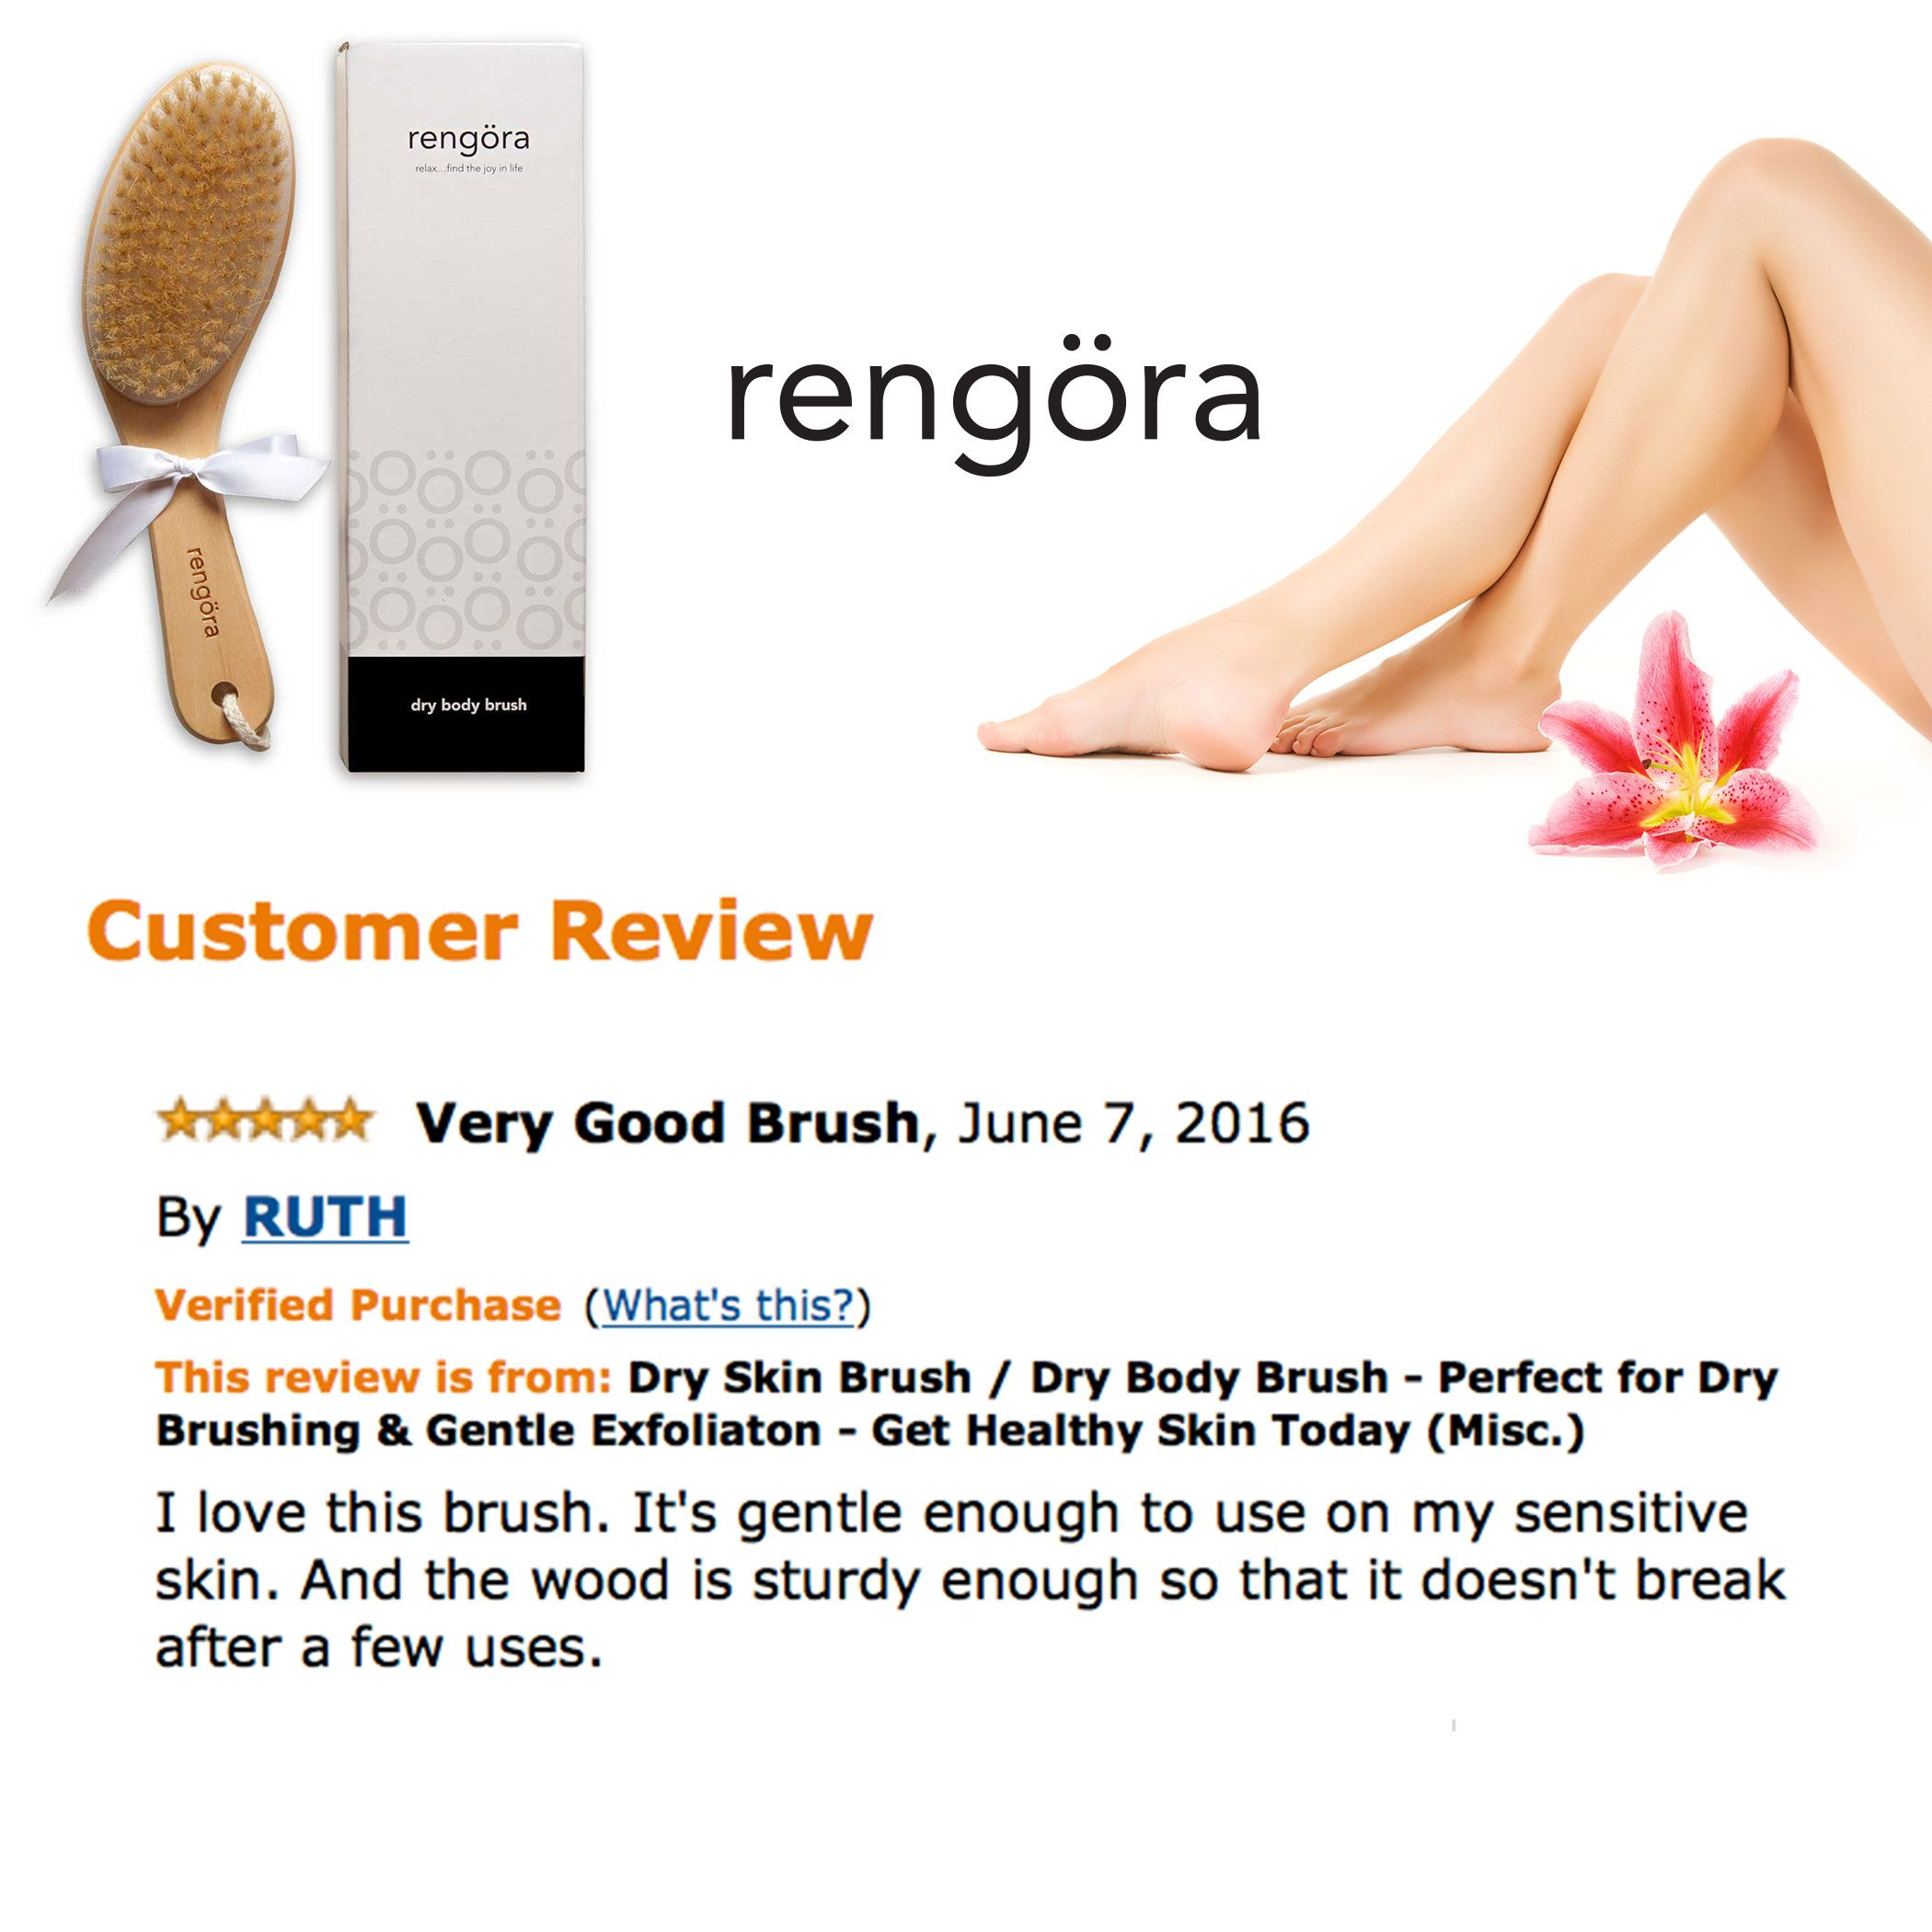 Great new review and others like it who are very pleased with their new dry body brush. Dry brushing is a great way to exfoliate your skin, get your circulation flowing, and remove toxins from your body. Check it out...your healthy new skin will thank you for it!